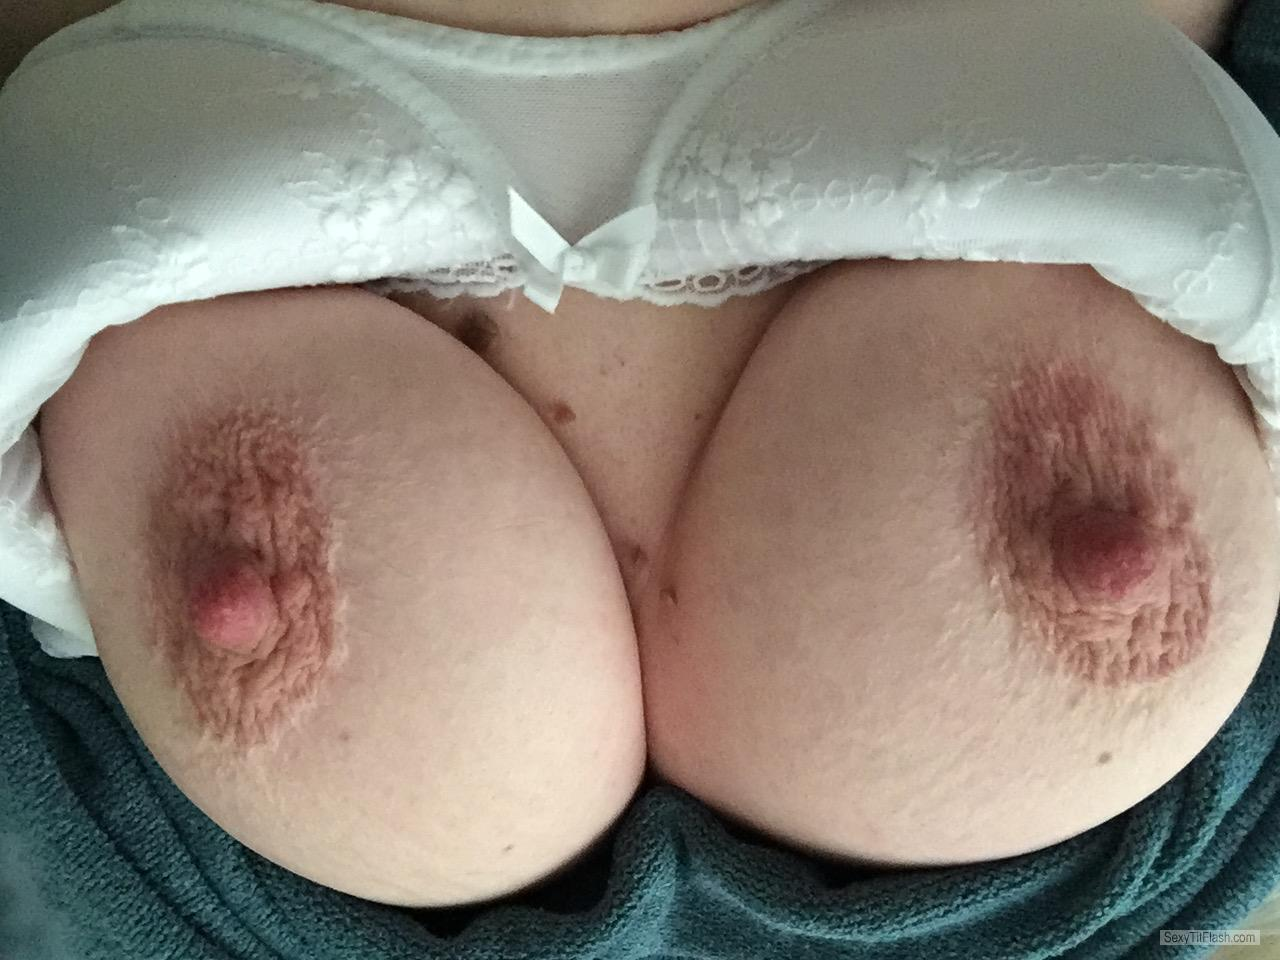 Tit Flash: My Big Tits - Beauts from United Kingdom